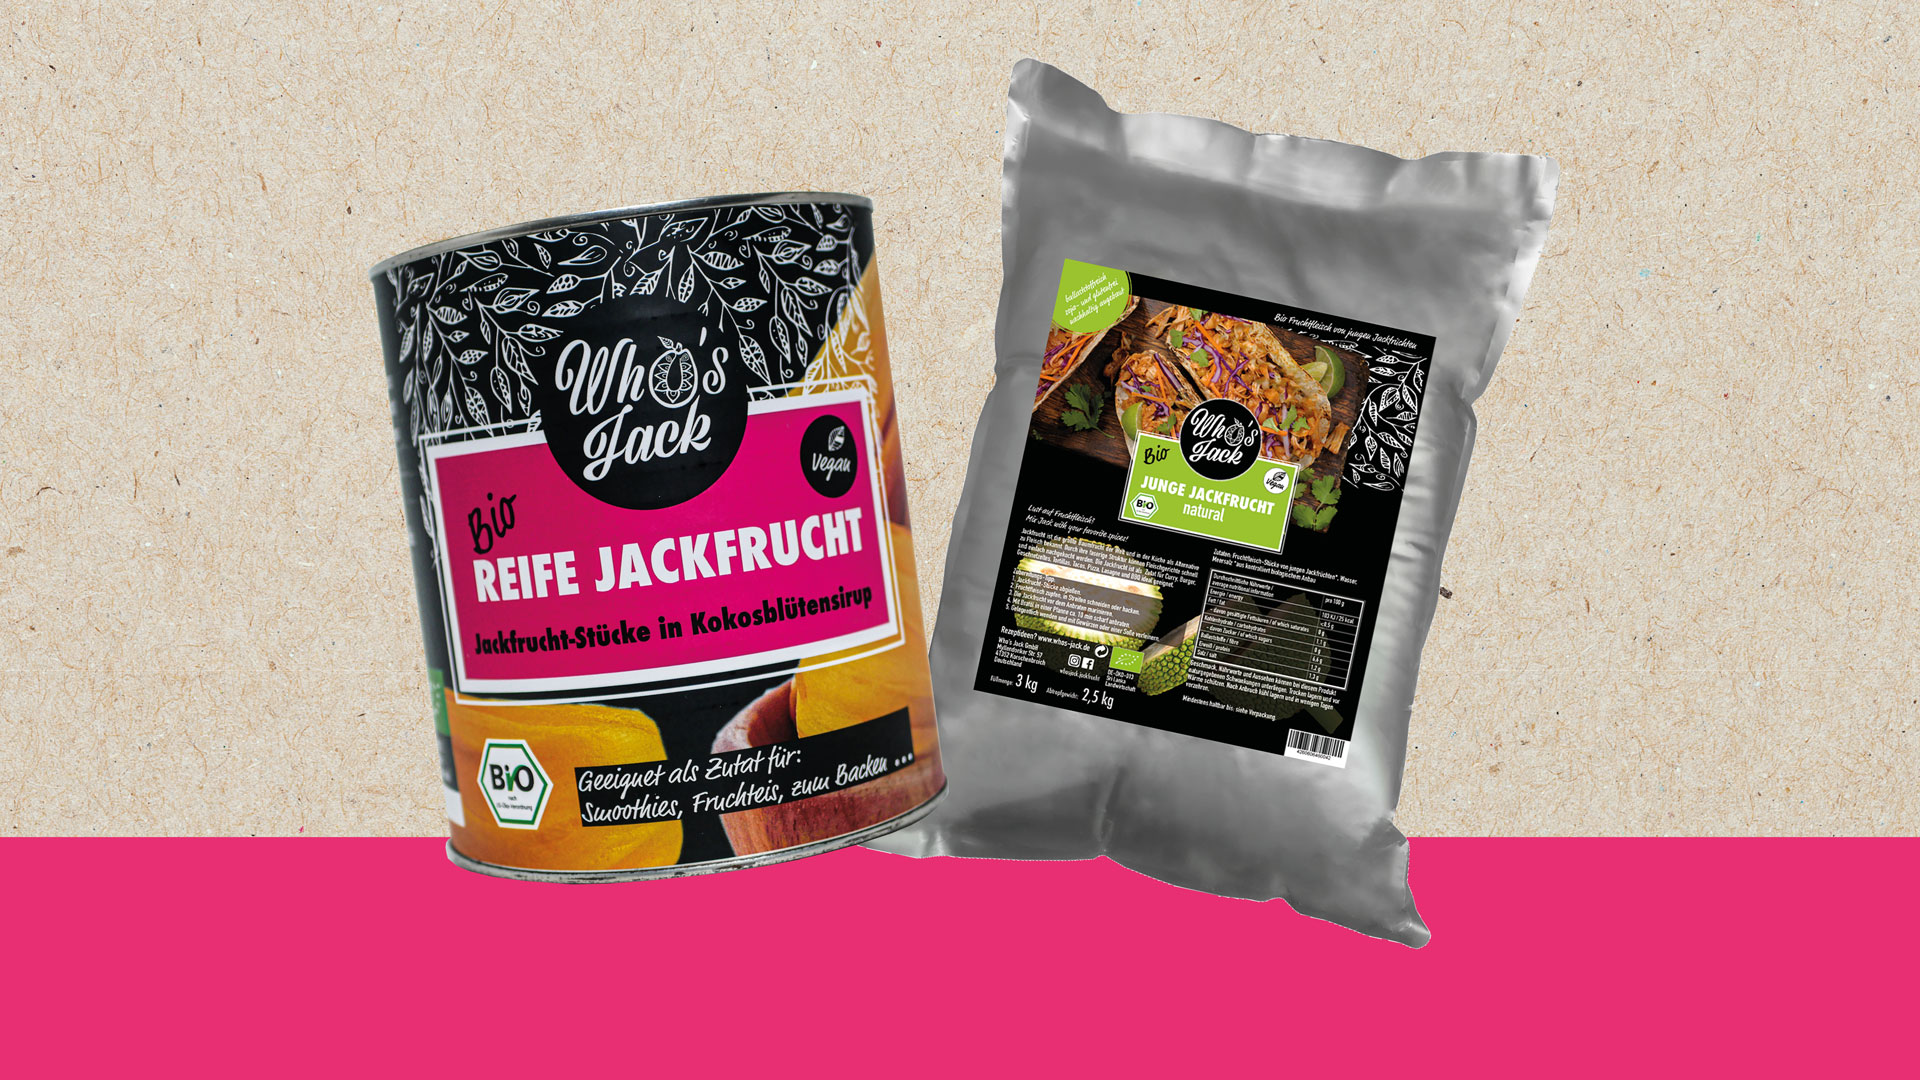 Who's jack, who's jack jackfruit, who's jack jackfrucht, jackfruit, jackfrucht, jackfruit bestellen, jackfrucht kaufen, jackfruit kaufen, bio-jackfruit, bio-jackfrucht, who's jack, fleischersatz, alternative zu fleisch, jackfruit frikassee, jackfruit geschnetzeltes, jackfruit geschmack, jackfruit burger, jackfruit pulled pork, jackfruit bbq, jackfruit pulled pork bestellen, chefkoch jackfruit, jackfruit gulasch, jackfruit bolognese, jackfruit fleischersatz, jackfruit stinkfrucht, jackfruit deutsch, jackfruit curry, jackfruit curry rezept, jackfruit kalorien, jackfruit tree, jackfruit durian, jackfruit kaufen, jackfruit rezepte, jackfruit rezept, jackfruit brigitte, jackfruit baum kaufen, jackfruit bao, jackfruit dose, jackfruit grillen, jackfruit herkunft, jackfruit salat, jackfruit döner, jackfruit kohlenhydrate, jackfruit durian unterschied, jackfruit nährwerte, jackfruit dm, jackfruit edeka, jackfruit kaufen edeka, jackfruit rossmann, upton naturals jackfruit, jackfruit is durian, upton jackfruit germany, upton jackfruit, alnatura jackfruit, jacky f jackfruit, lotao jackfruit, govinda jackfruit, jackfruit kern, jackfruit kaufen köln, jackfruit stinkt, jackie jackfruit, jackfruit bei rewe, jackfruit geruch, jackfruit fleischersatz de, jackfruit gerichte, jackfruit fleischersatz rezepte, jackfruit vs durian, grüne jackfruit, Gastronomie, Food Service, Catering, Hotellerie